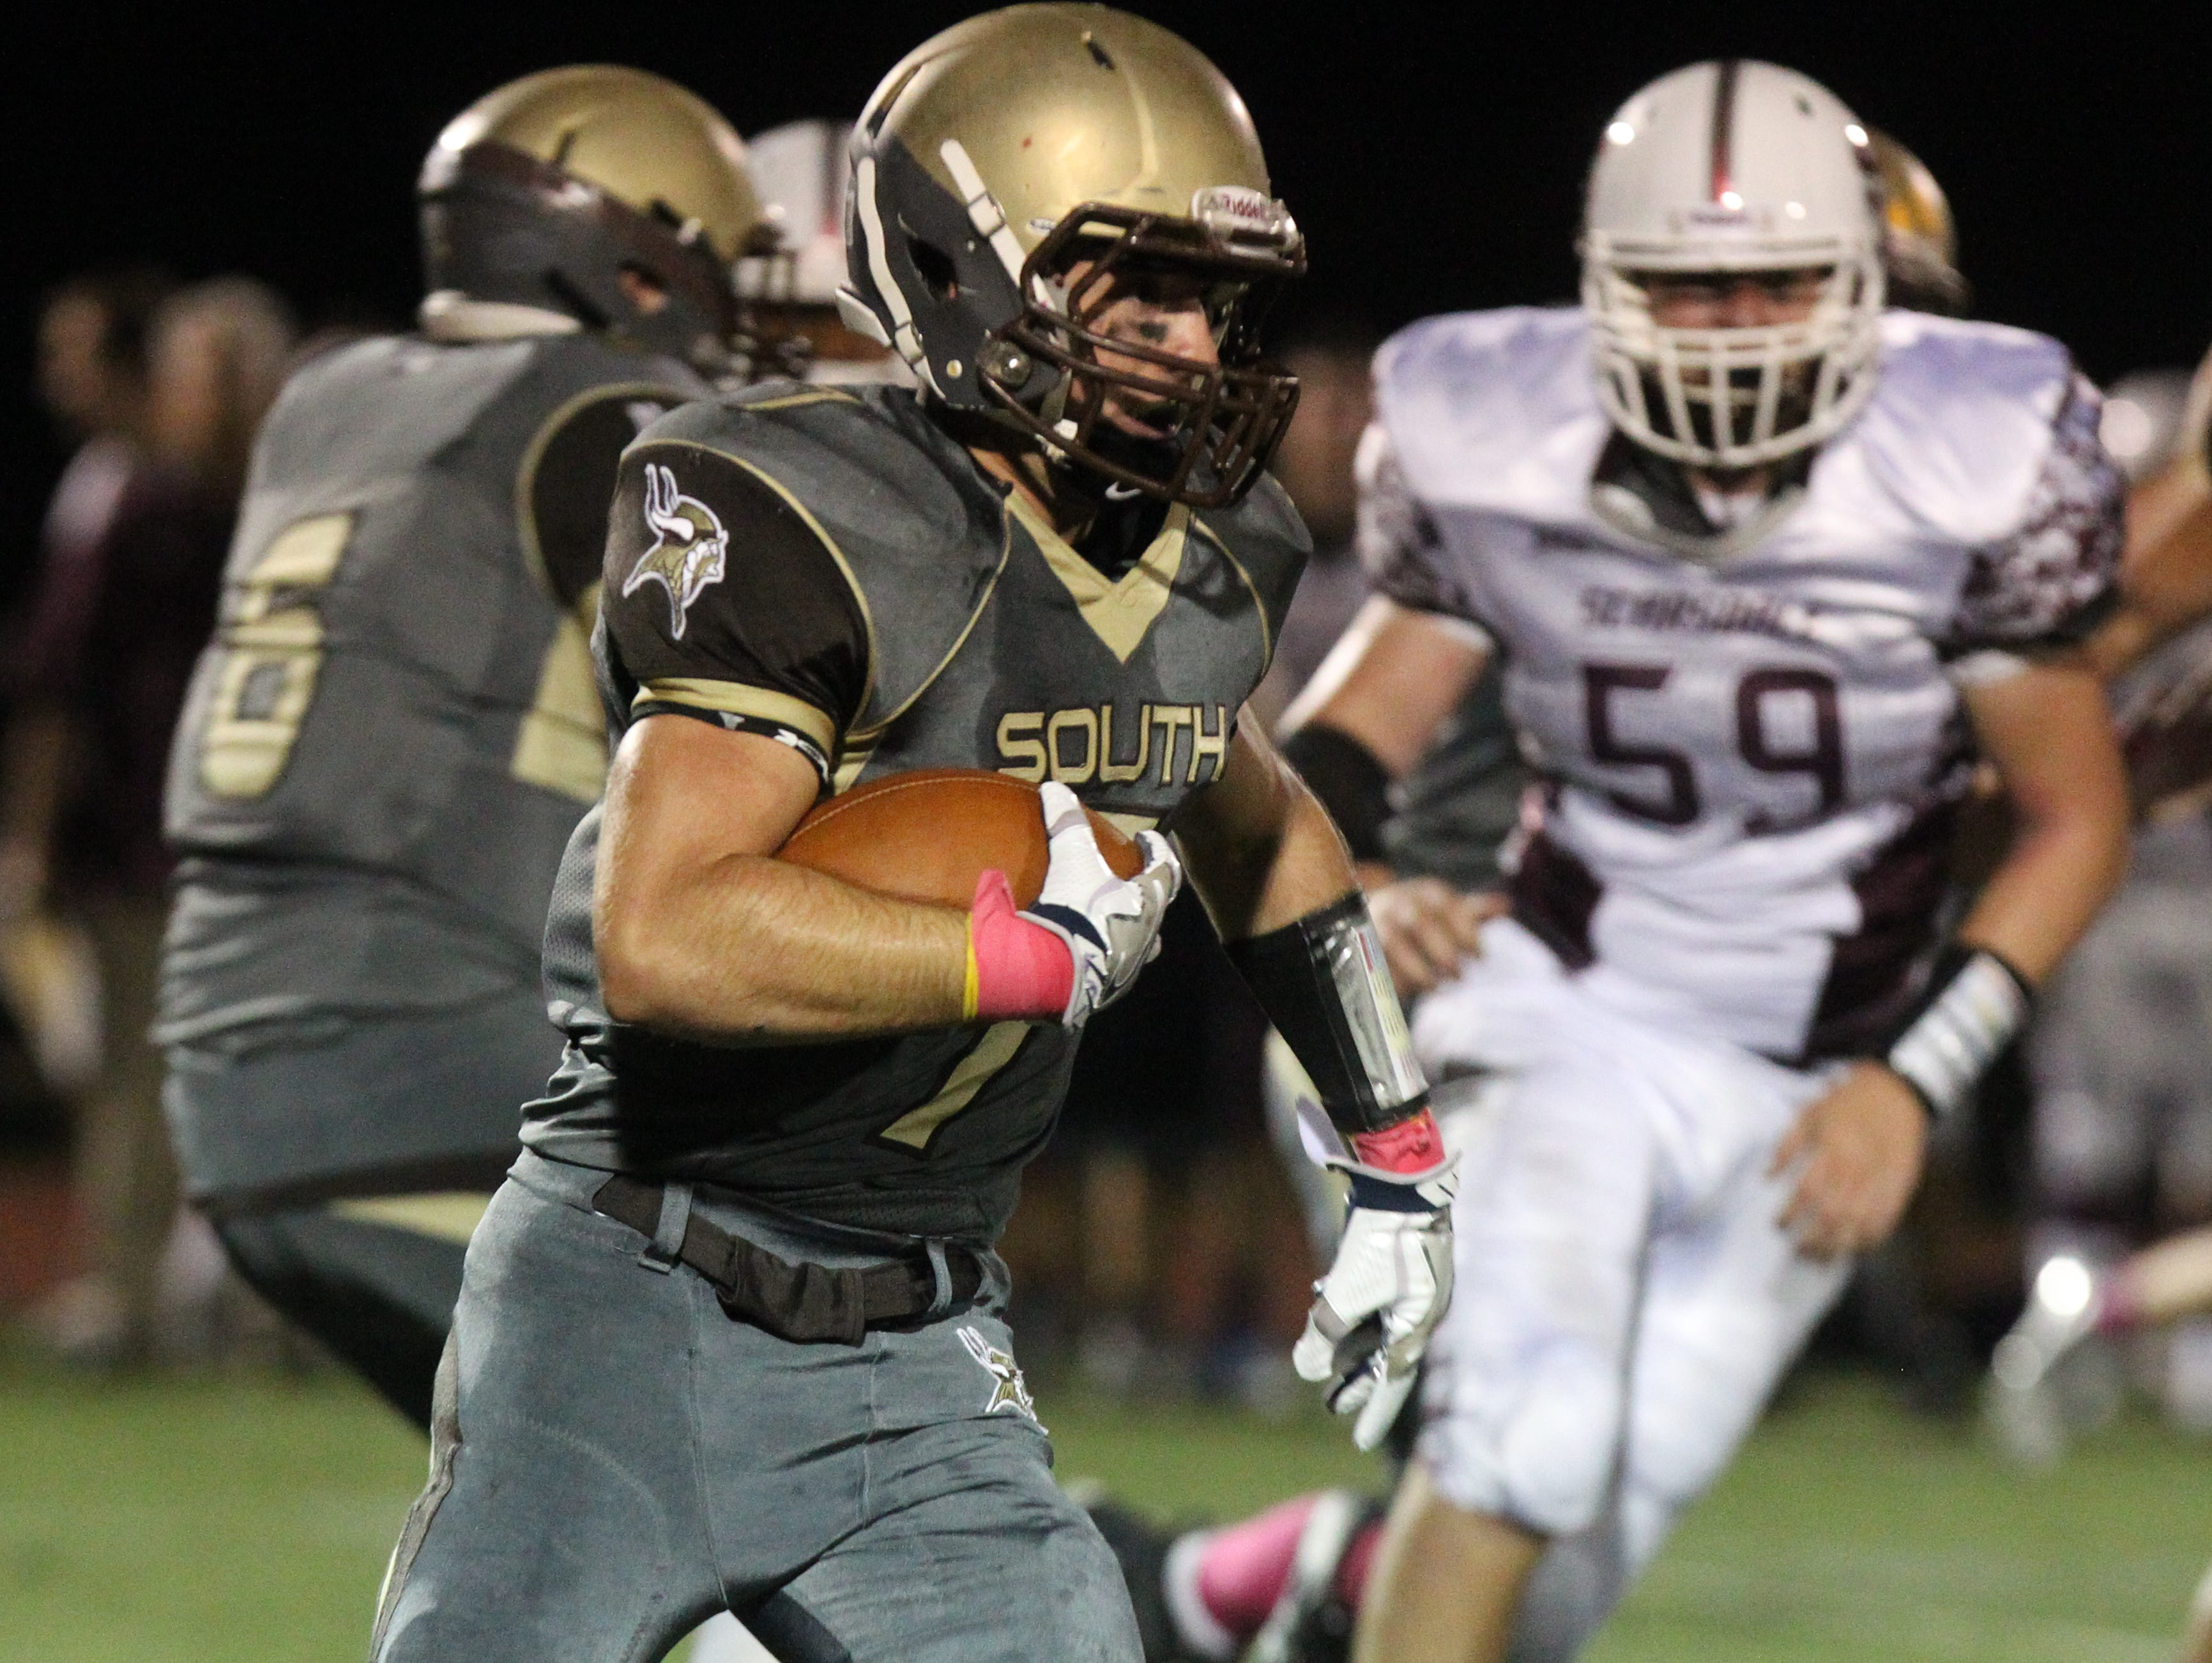 Clarkstown South's Sam Mistretta is pursued by Scarsdale's Dylan Quirk during their game at Clarkstown South Oct. 7, 2016.